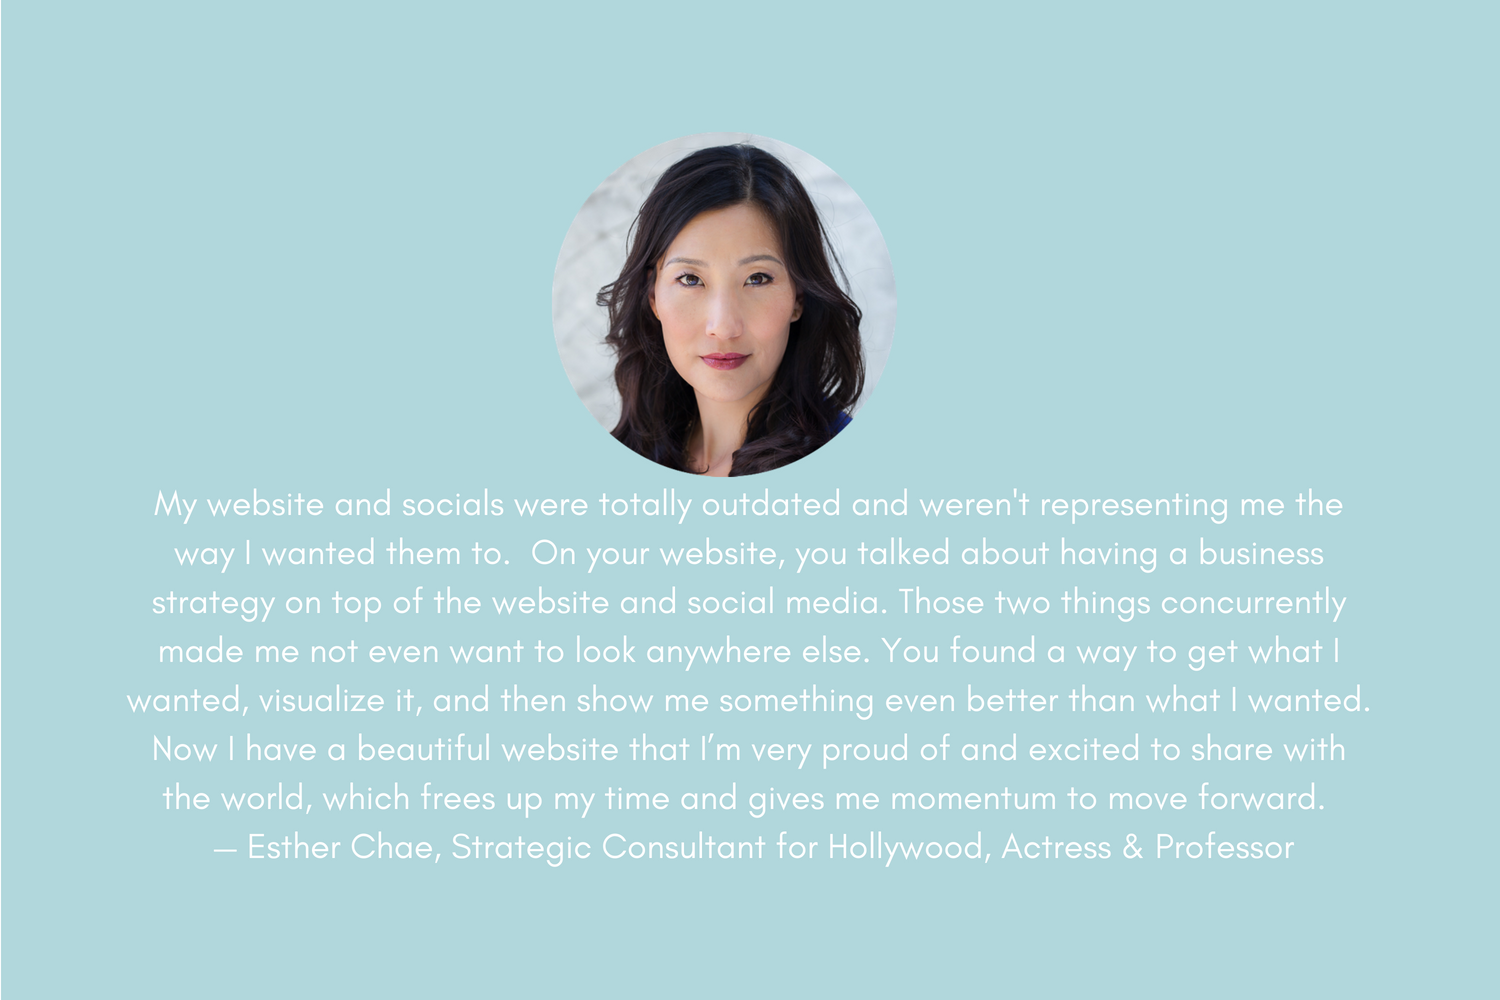 adrien-harrison-echo-studio-clients-testimonials-esther-chae-strategic-collaboration-between-korea-and-hollywood-actress-ted-fellow-speaker-coach-professor.png